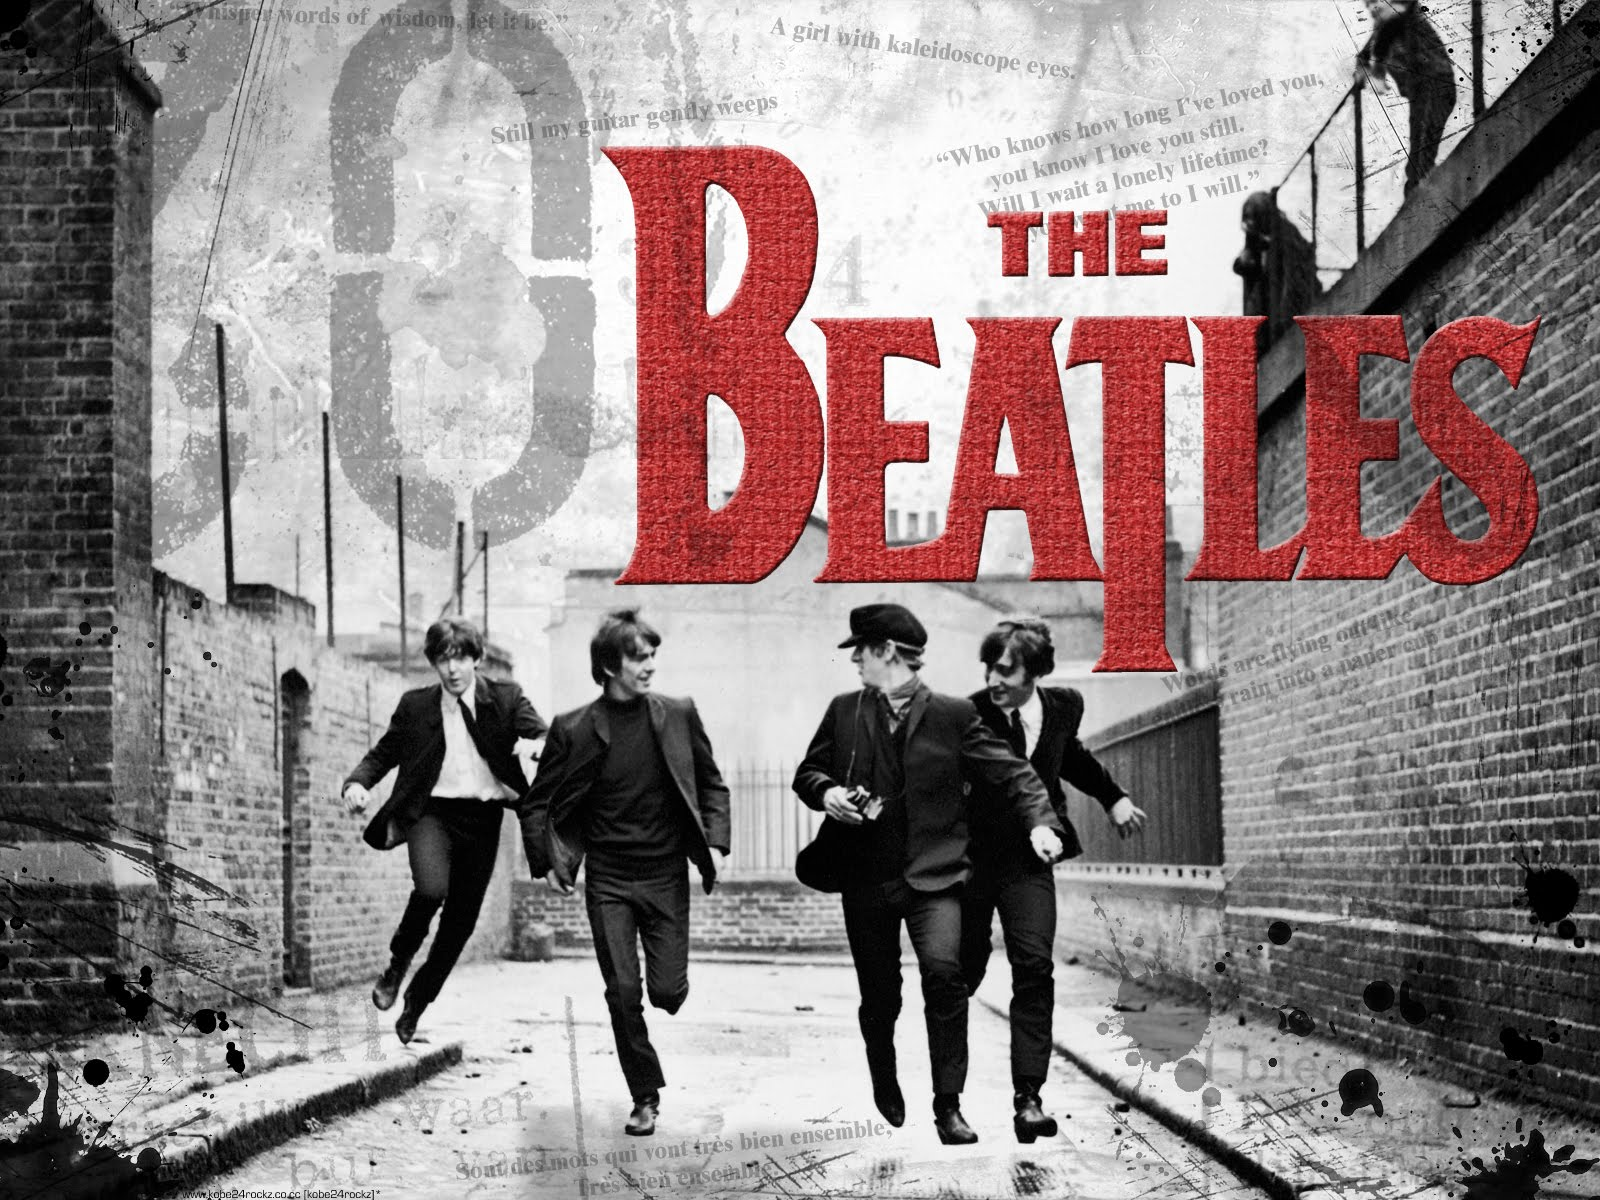 http://2.bp.blogspot.com/-LrN1xgpGV2c/TcweXa7WLnI/AAAAAAAAAp4/SEDYeDSVNuQ/s1600/the-Beatles-Wallpaper-oldies-rock-music-17264005-1600-1200.jpg